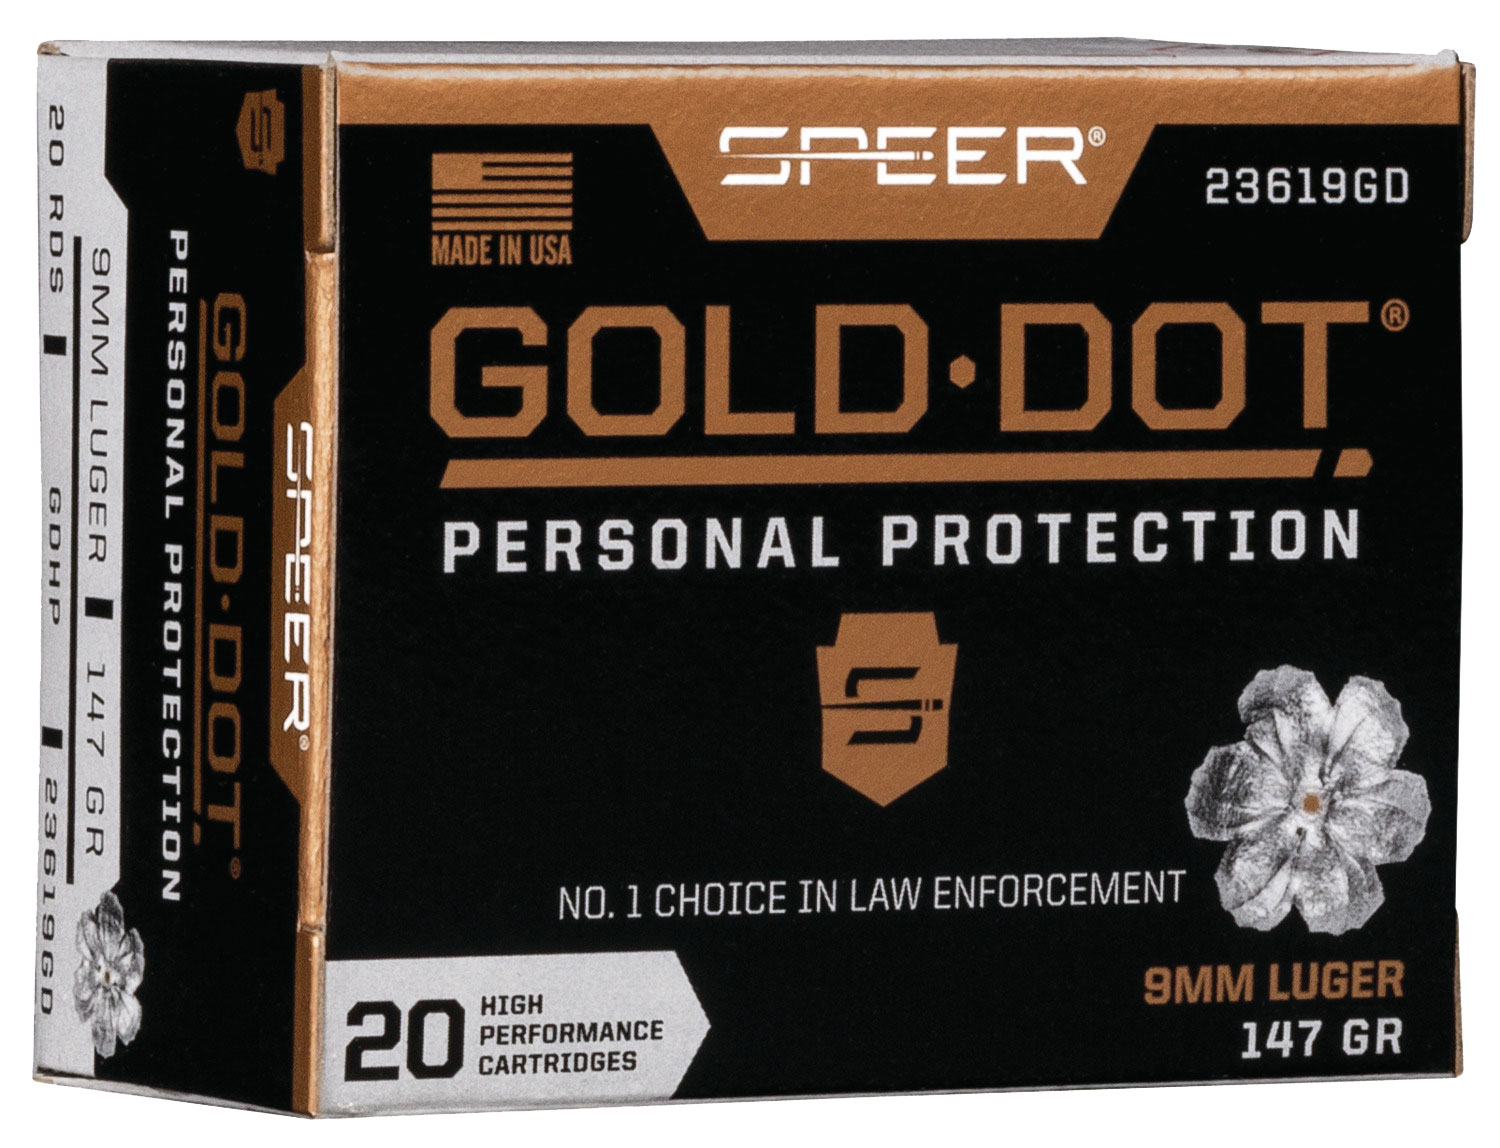 SPR GOLD DOT 9MM 147GR HP 20/200